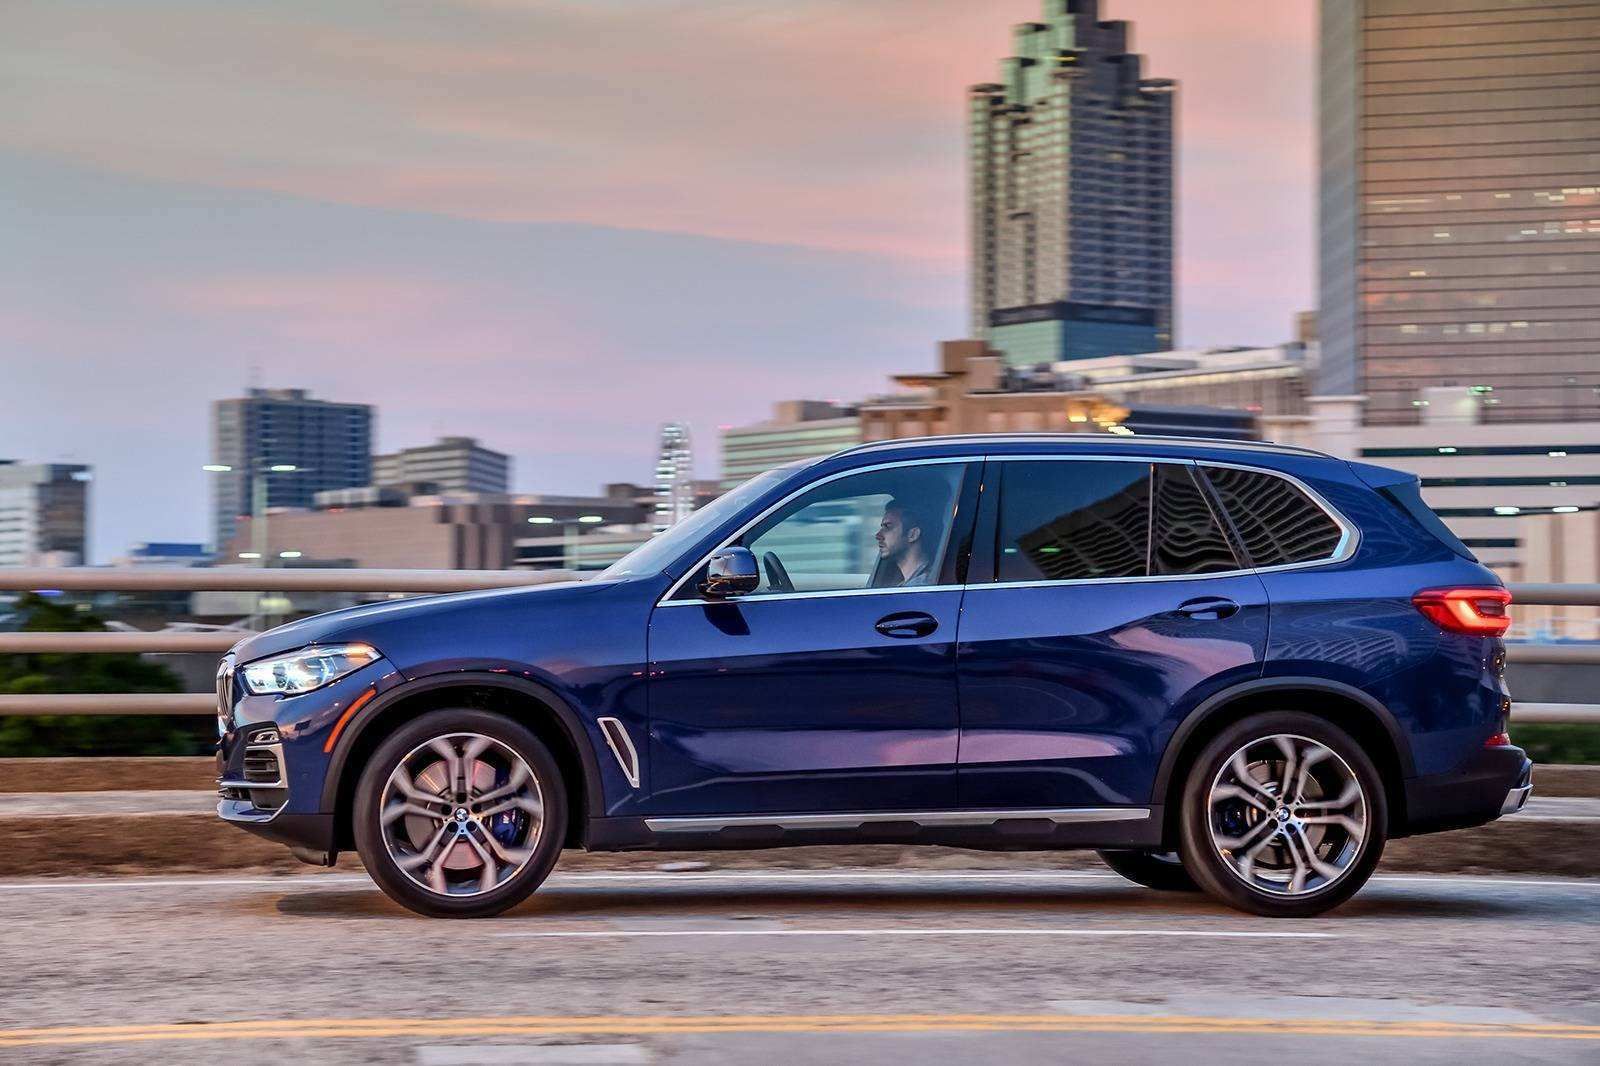 64 New Bmw 2019 X5 Release Date Performance Overview for Bmw 2019 X5 Release Date Performance